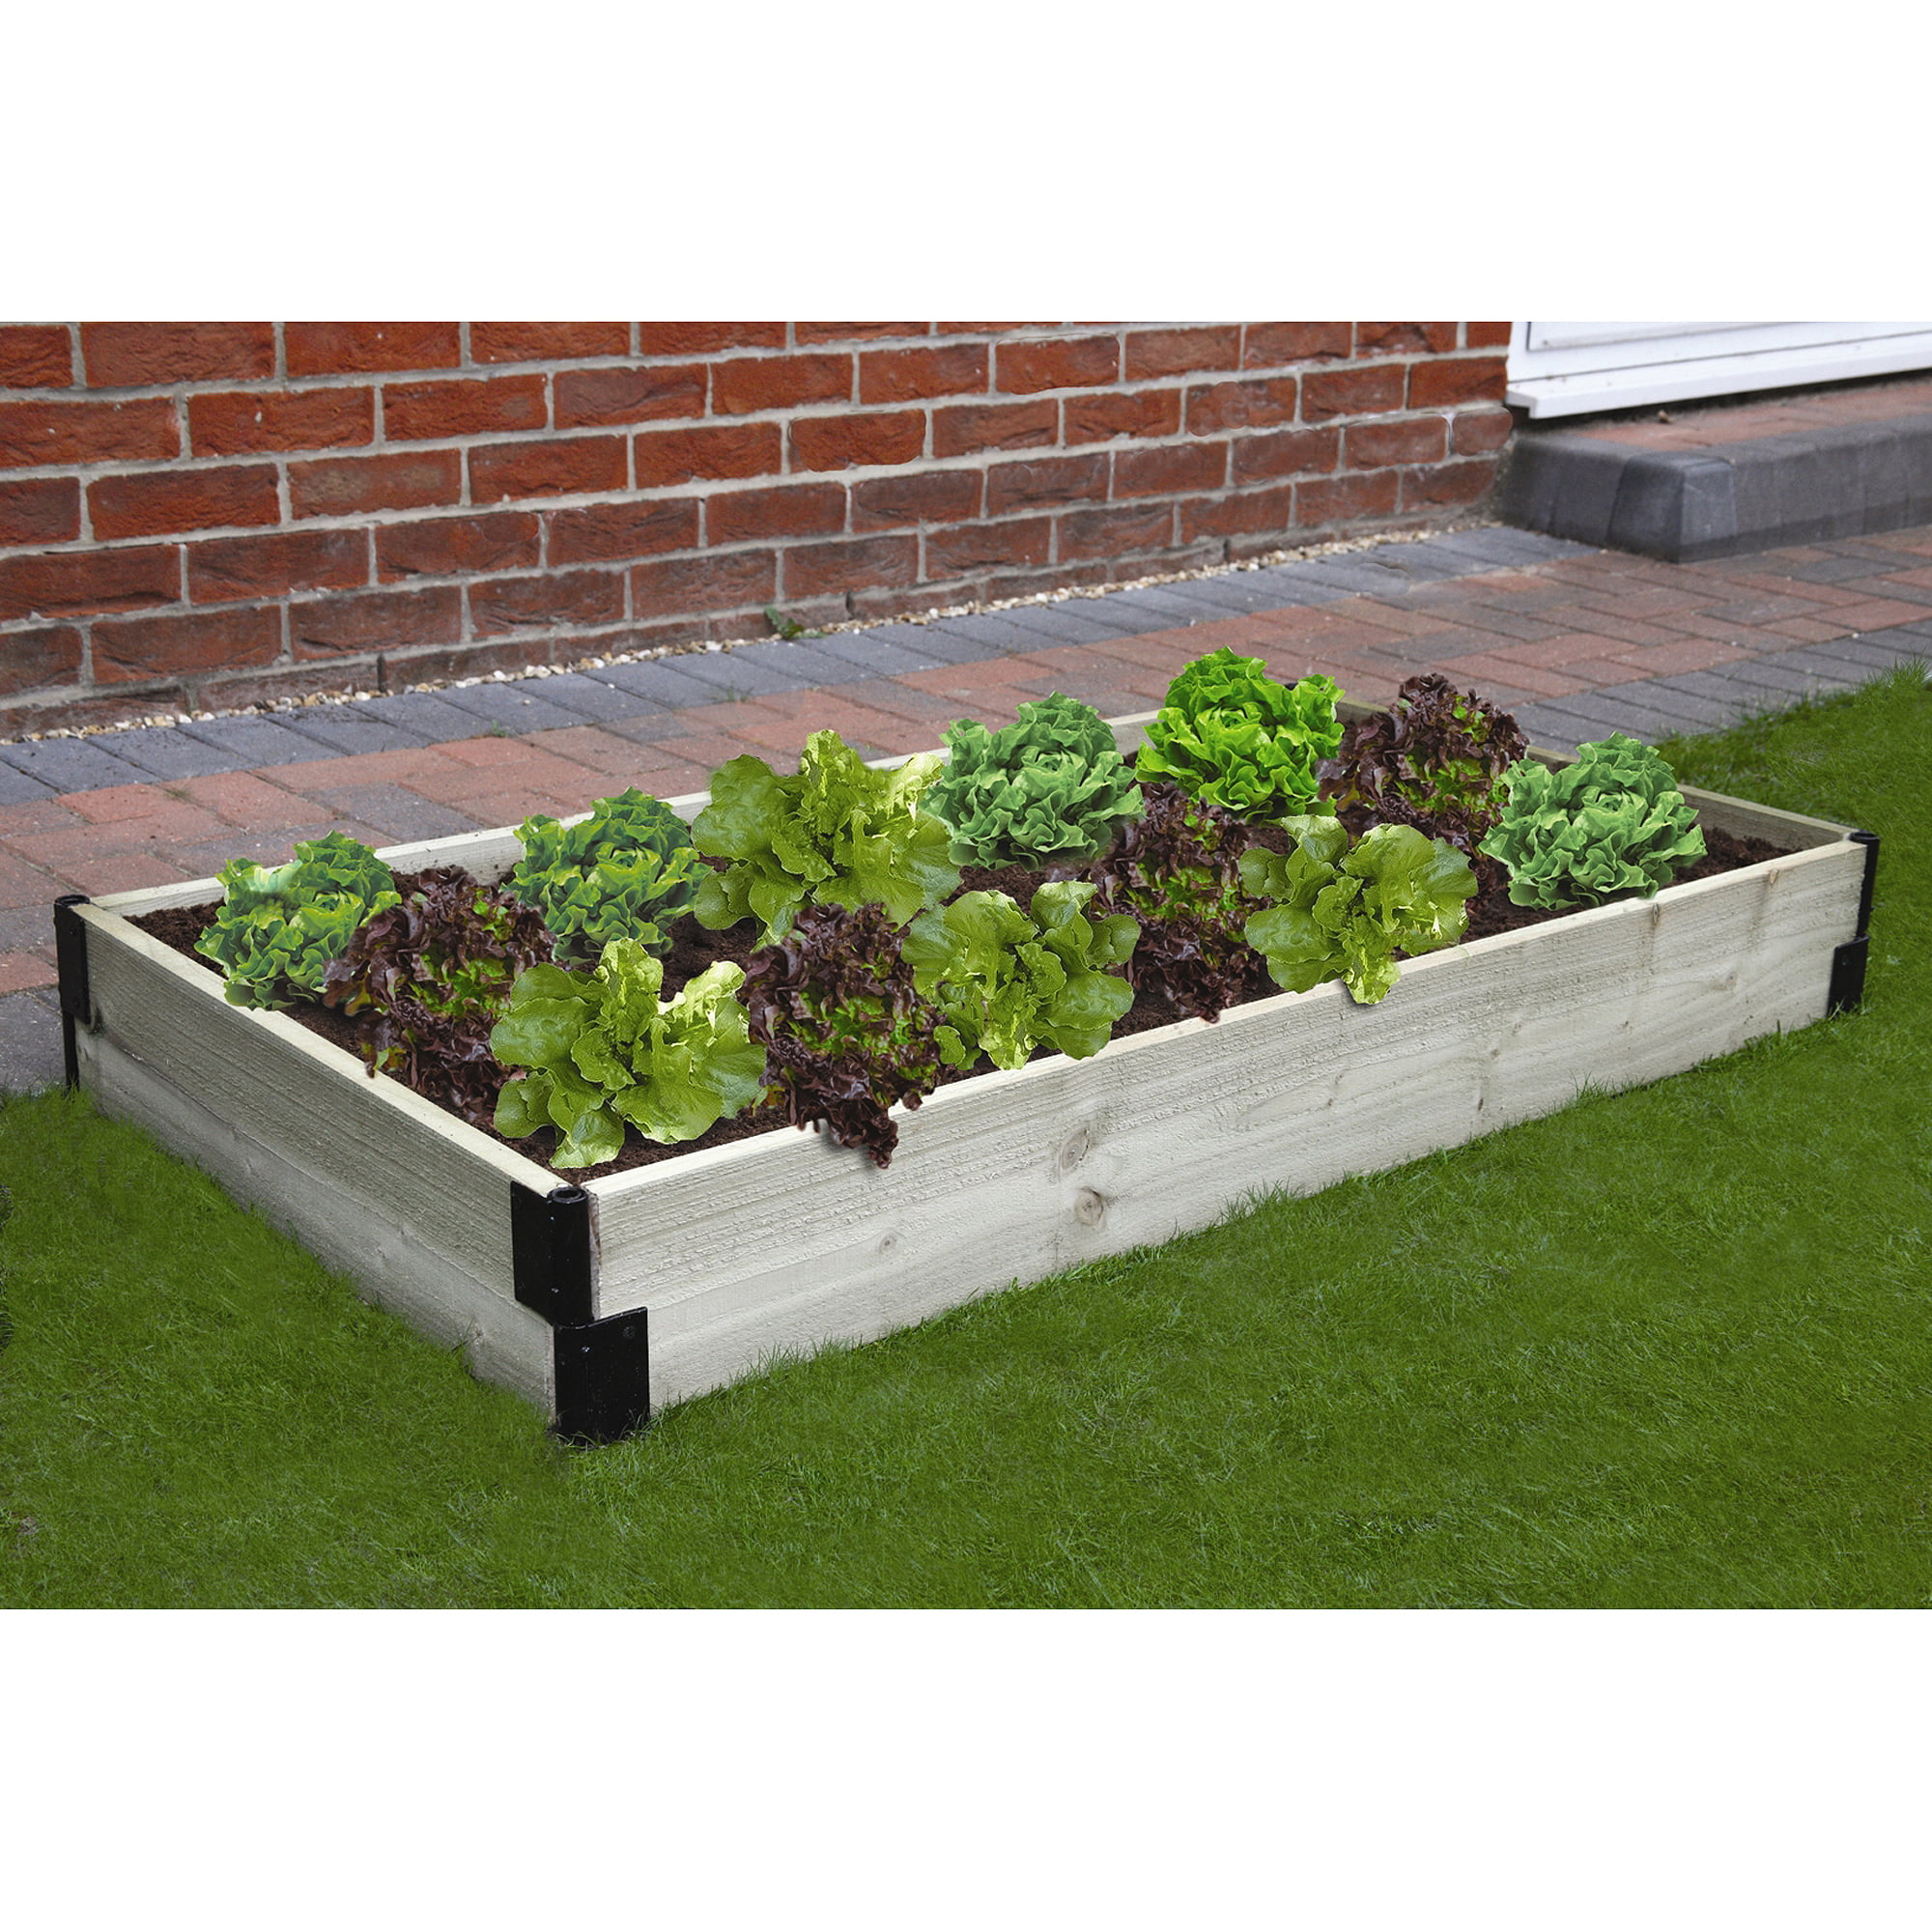 posite frame of kit bed composite it all garden raised inspirational rectangle